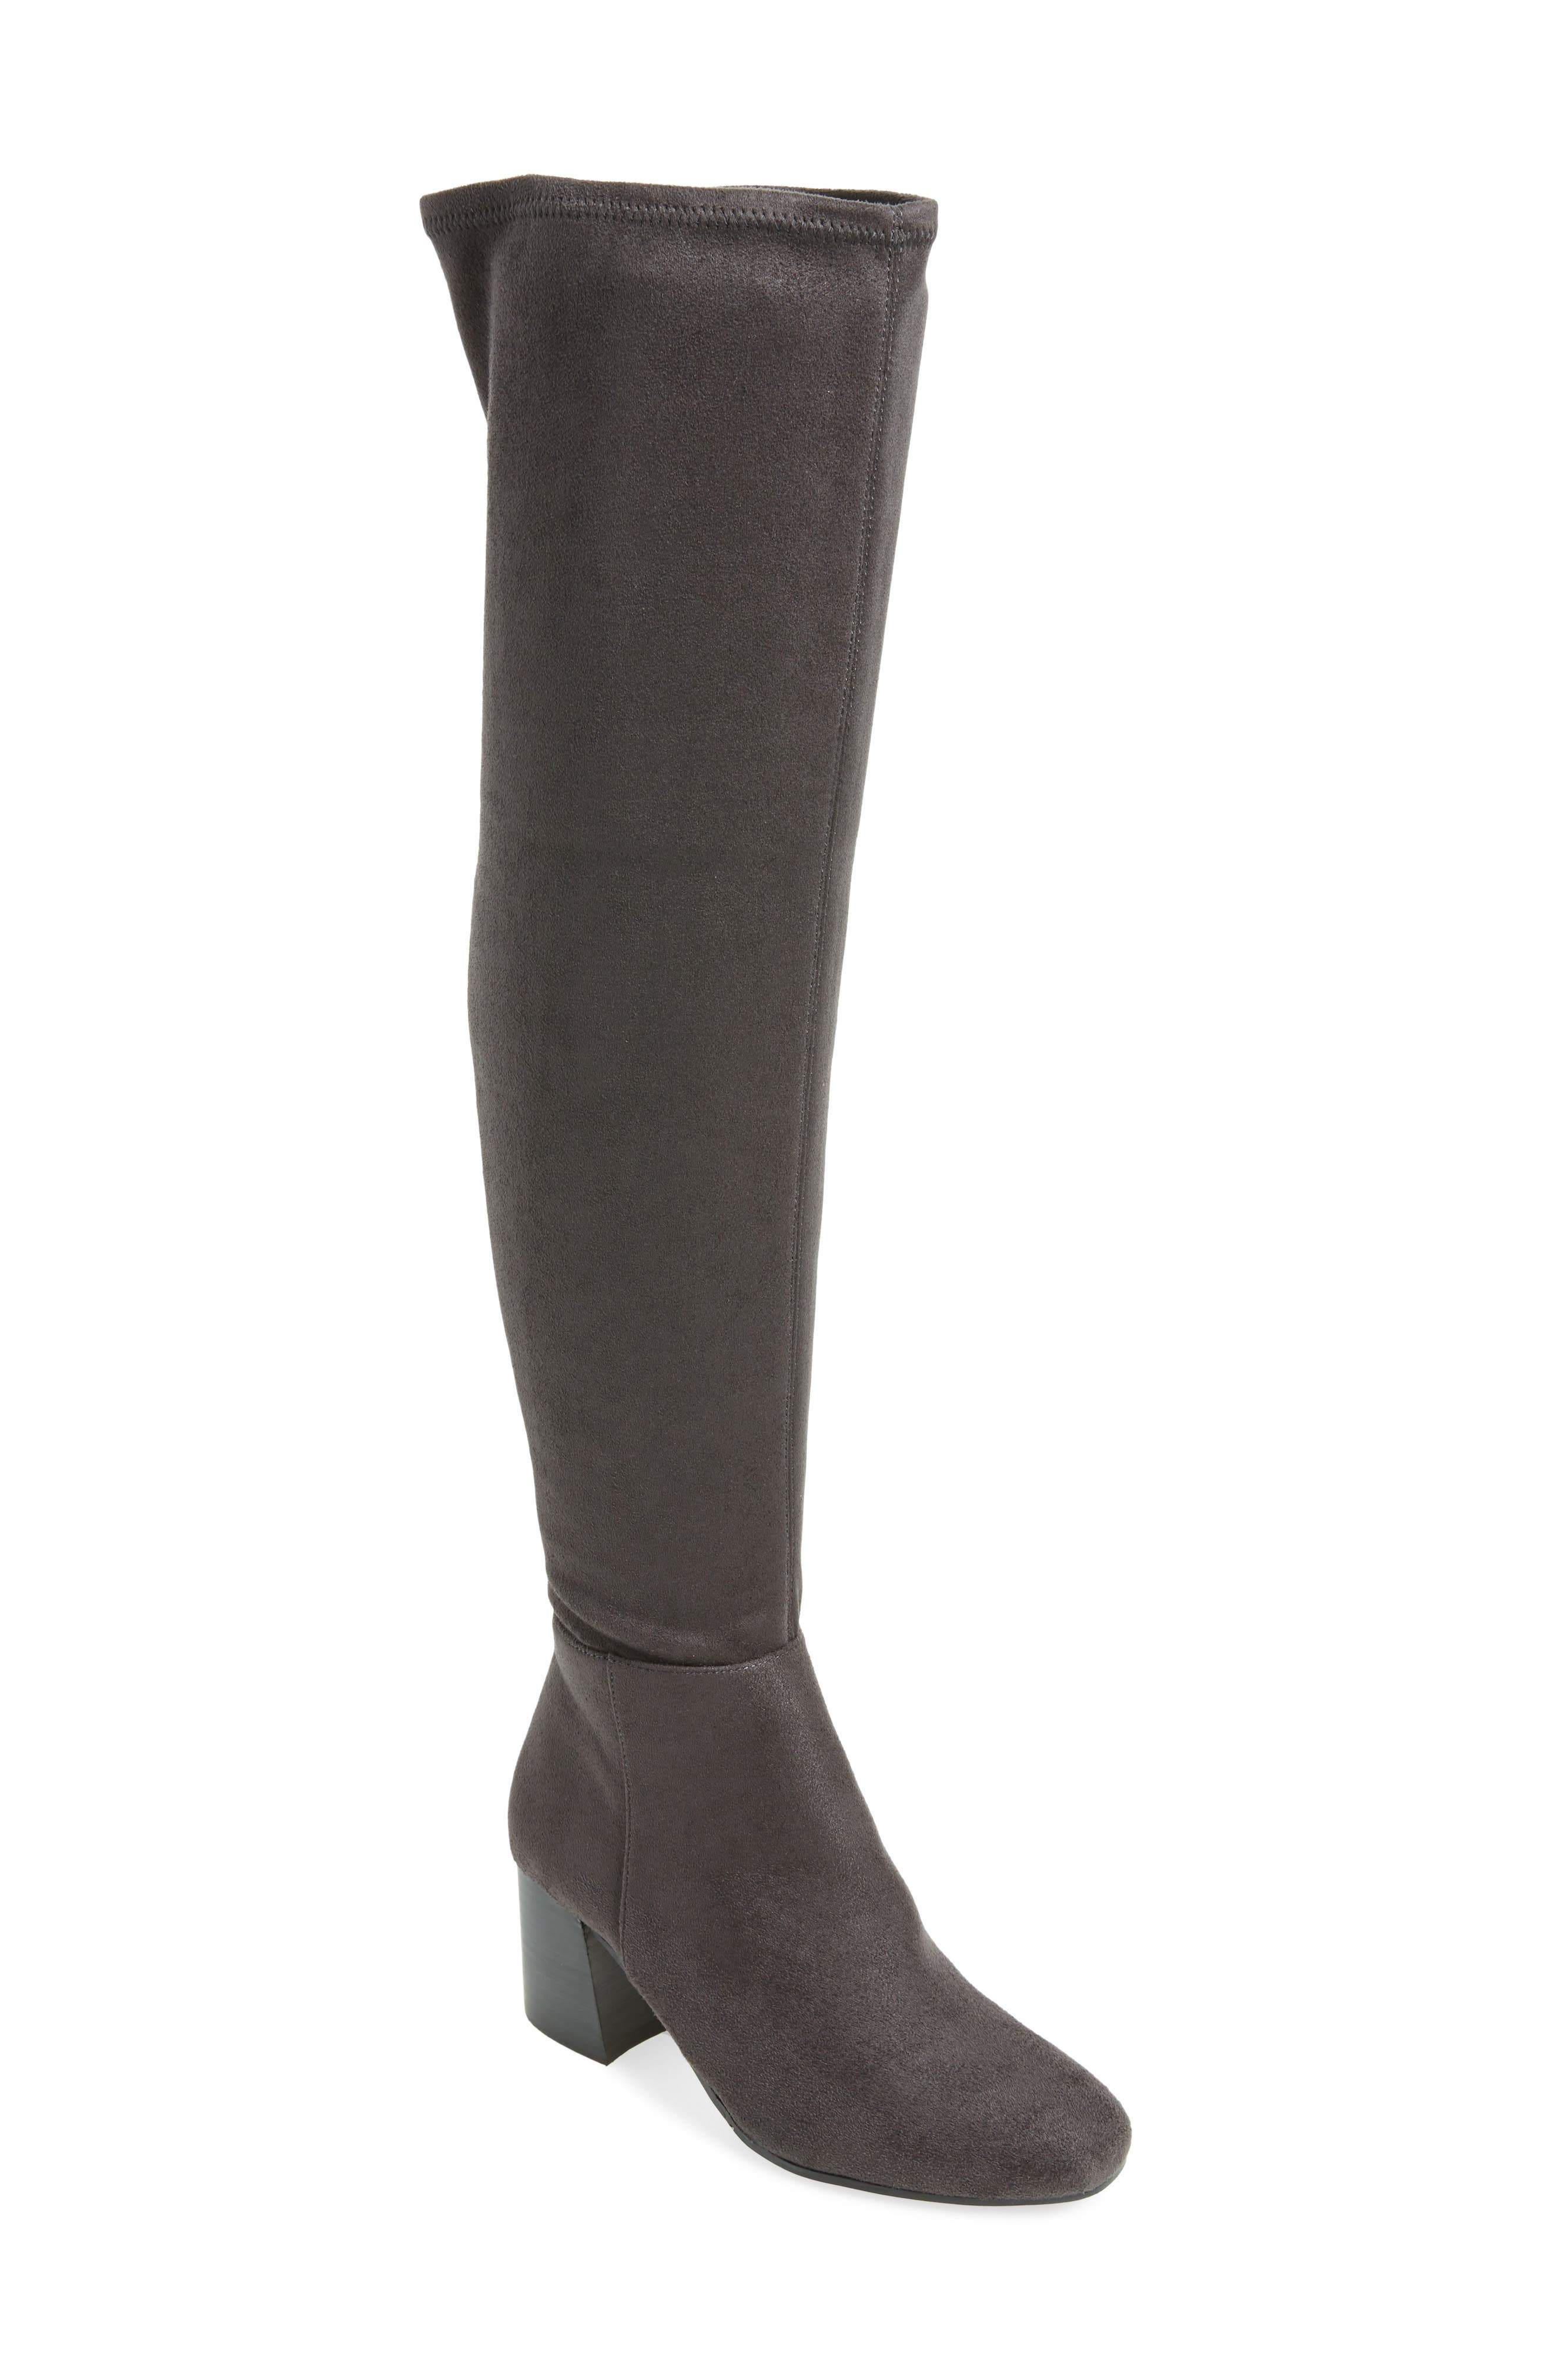 Main Image - Vince Camuto Kantha Over the Knee Boot (Women)